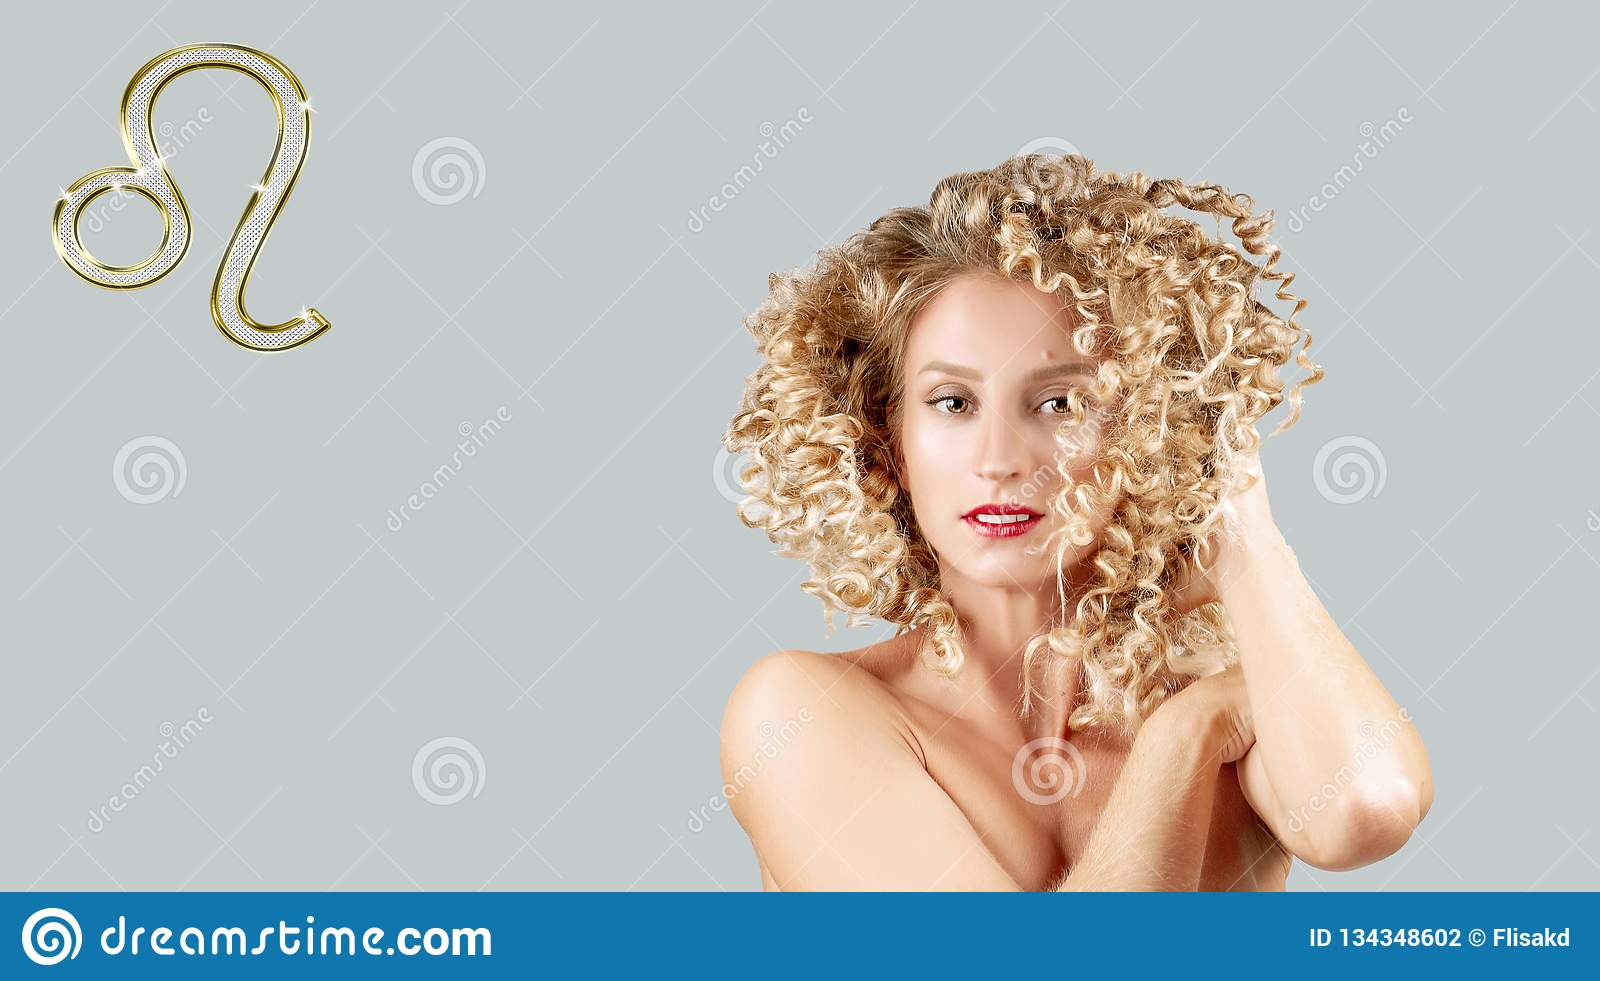 Astrology and horoscope, Leo Zodiac Sign. Beautiful woman with curly hair